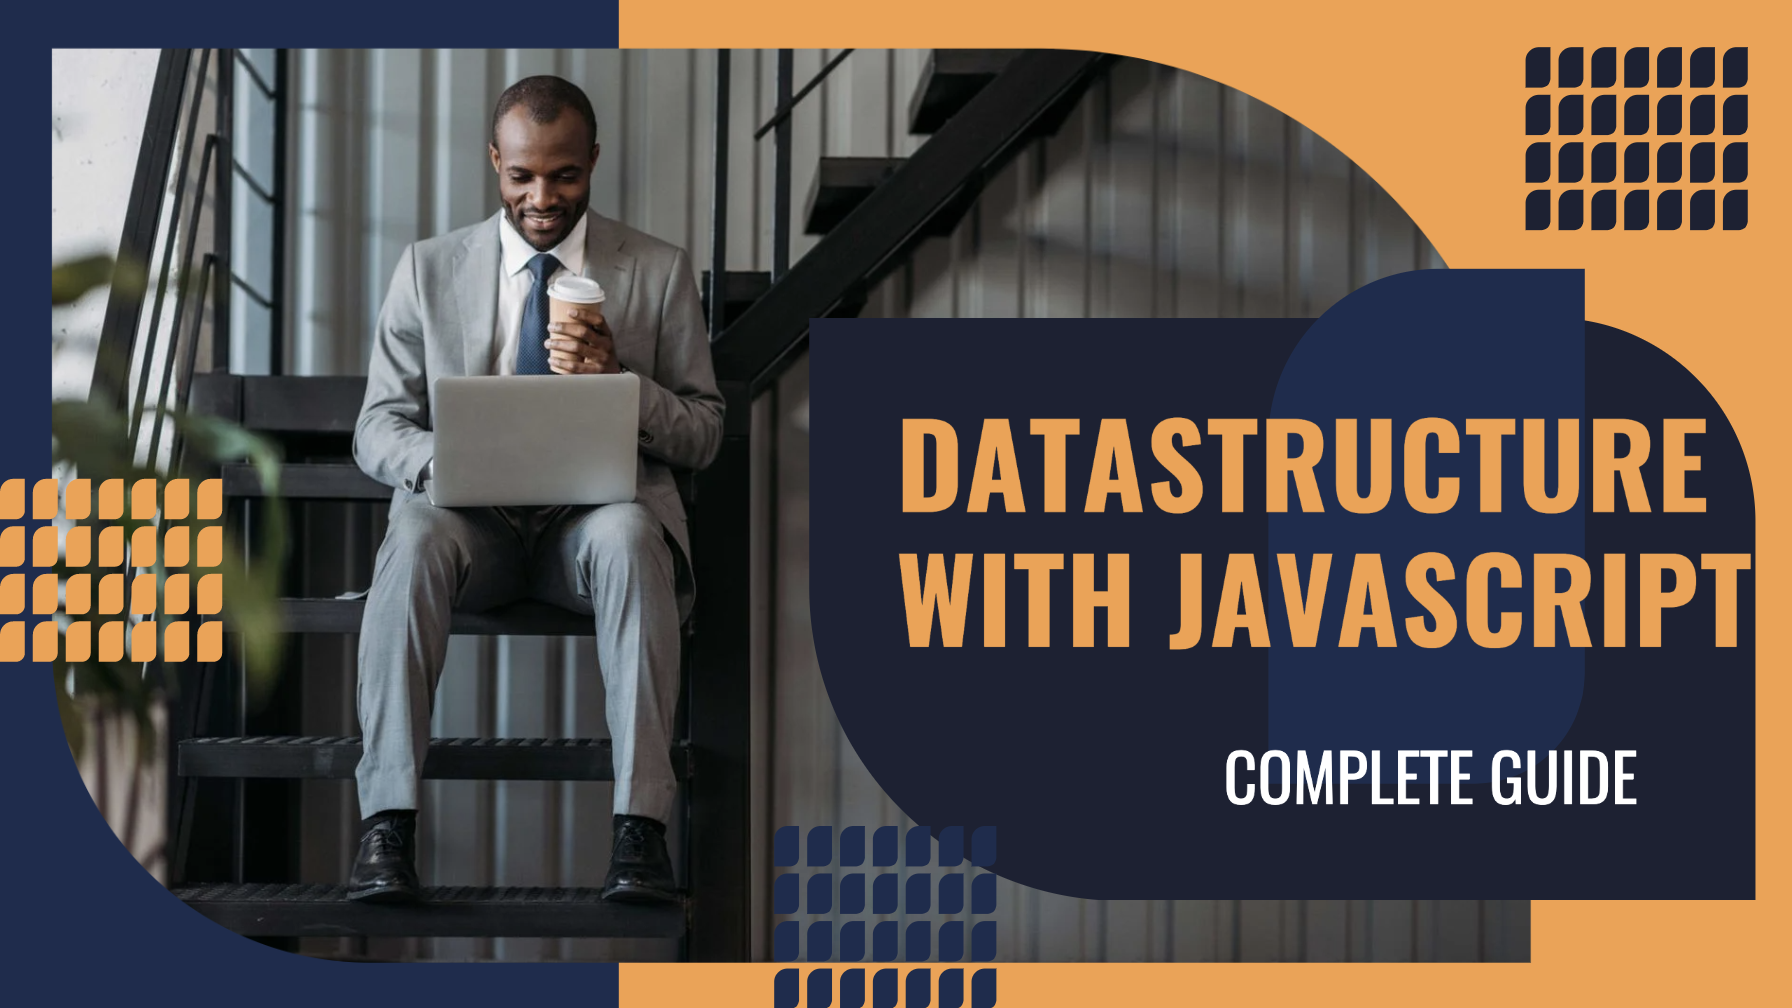 Datastructure with JavaScript